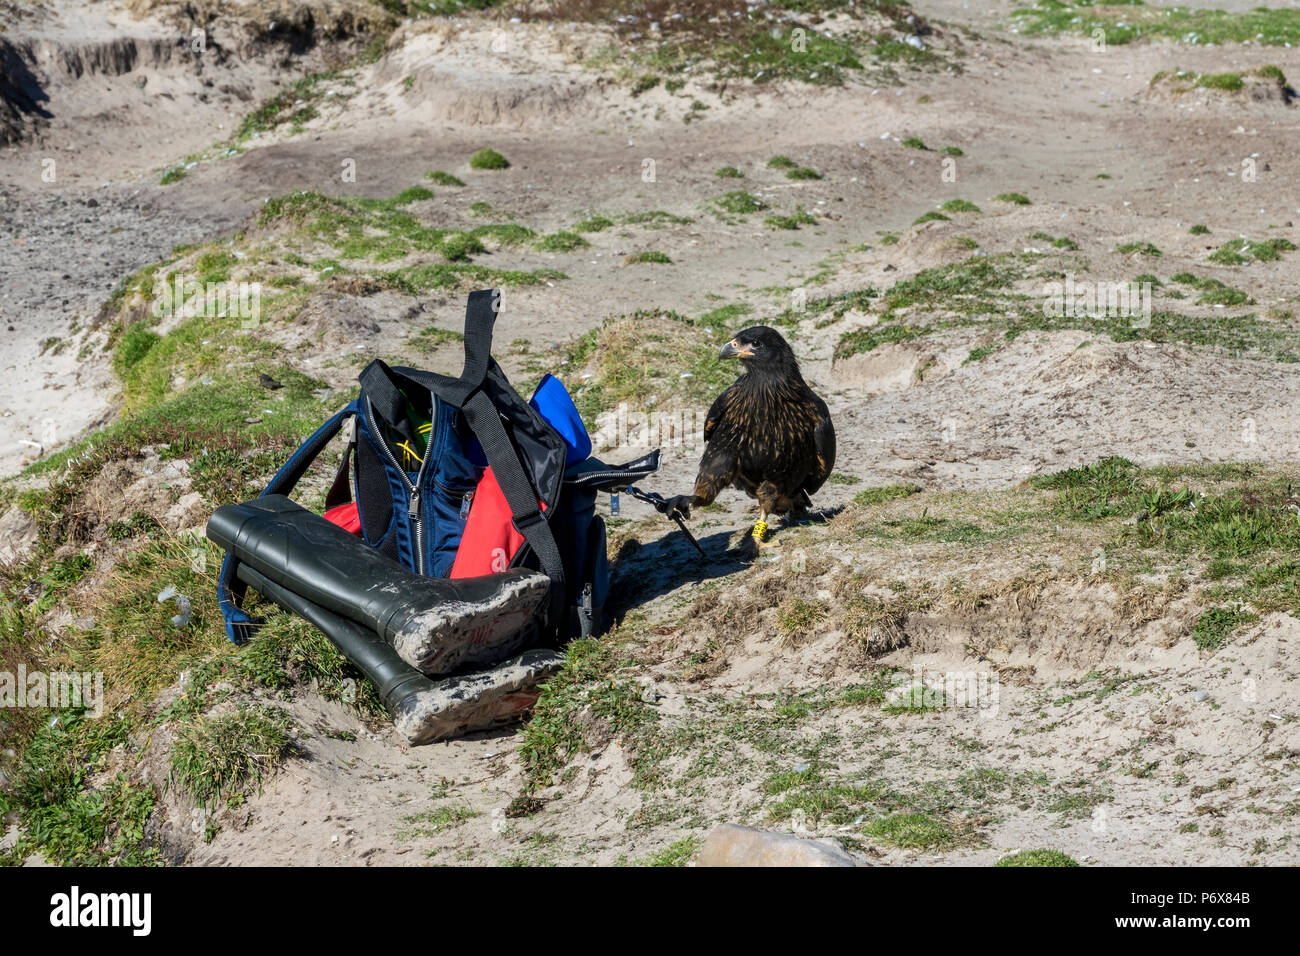 Striated caracara trying to steal a backpack, Grave Cove, West Falkland, Falkland Islands Stock Photo